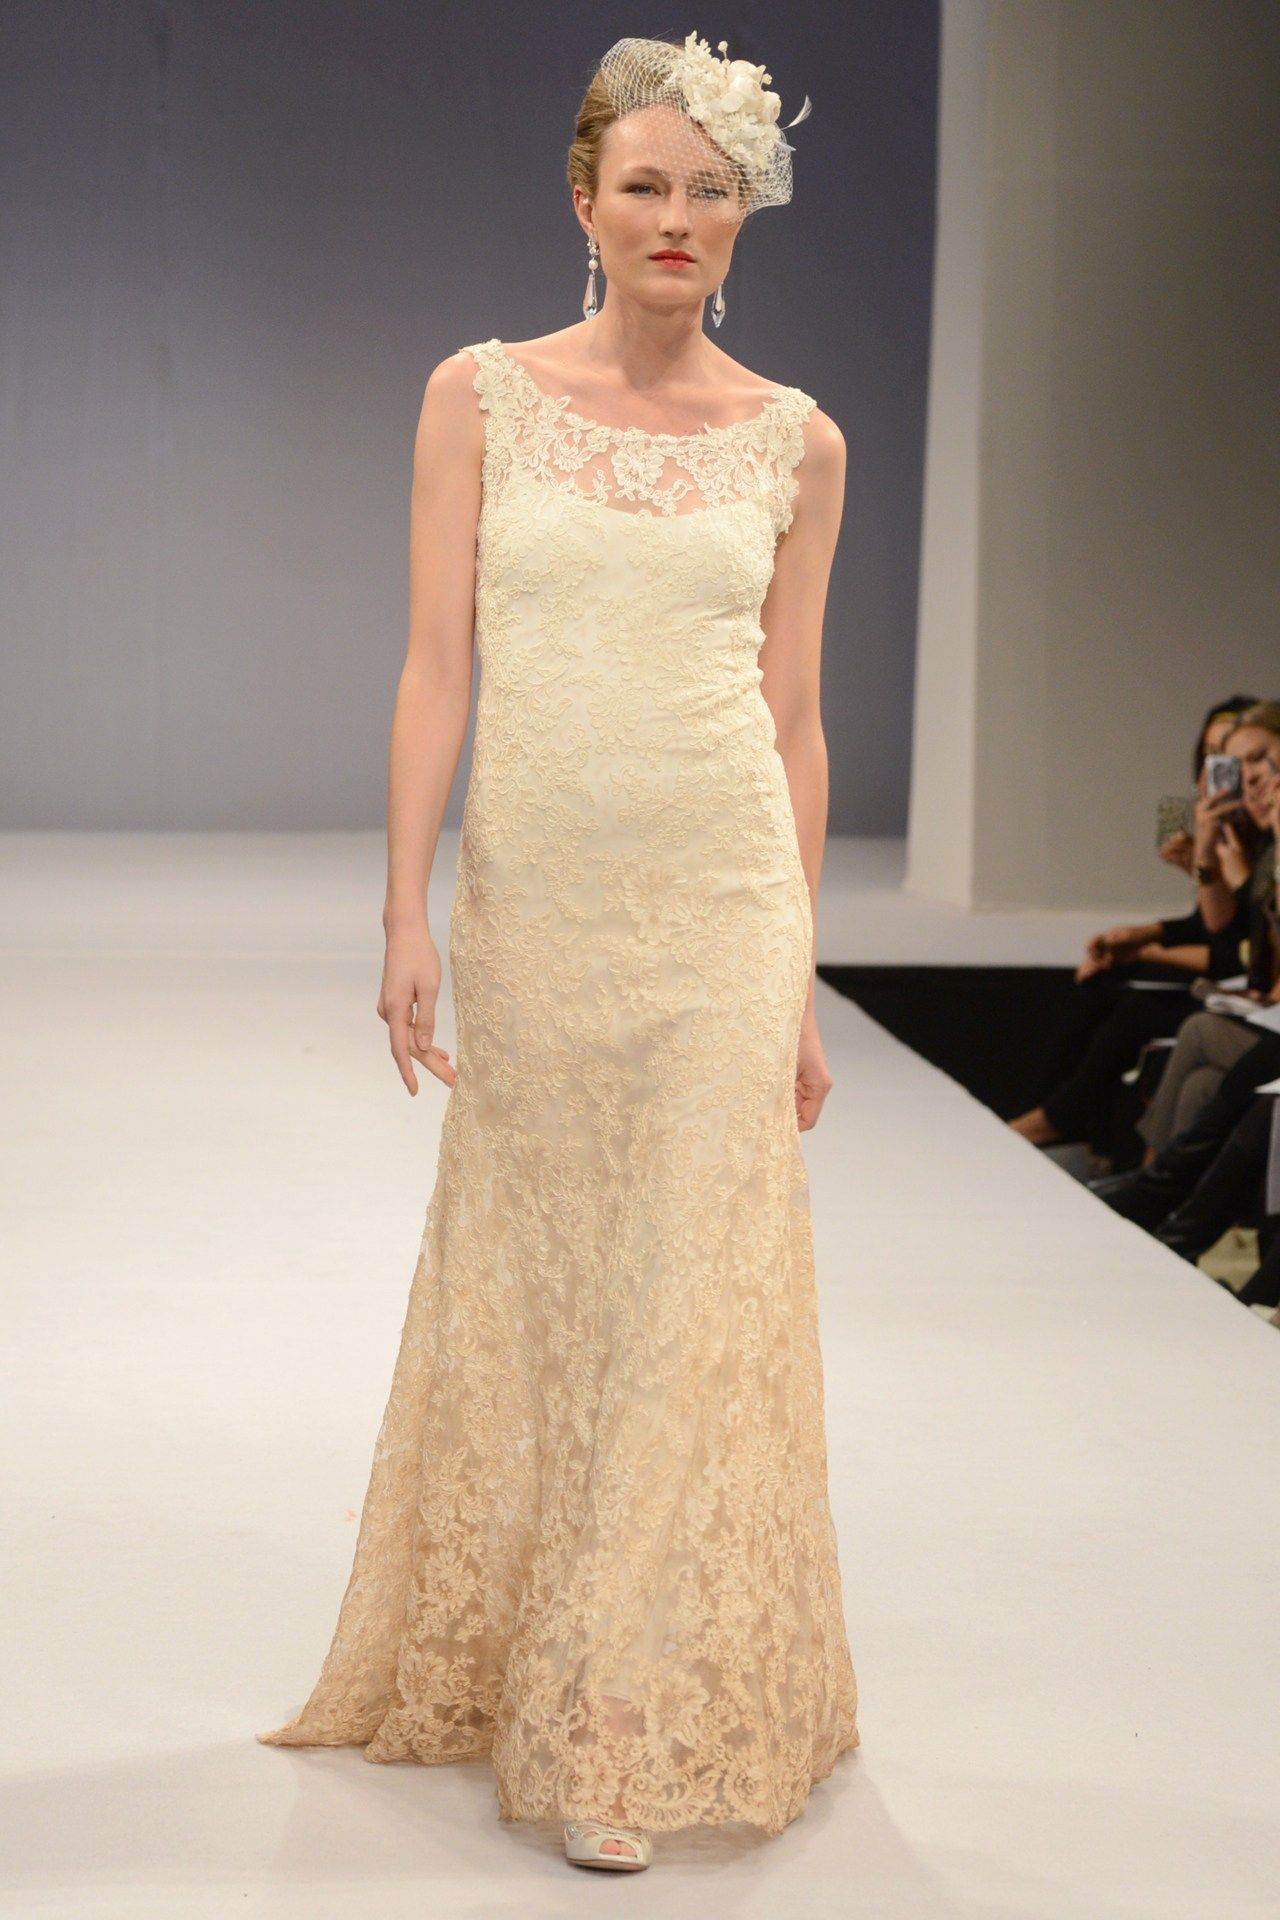 Champagne and ivory wedding dress  Wedding Dresses  The Ultimate Gallery BridesMagazine  Anne